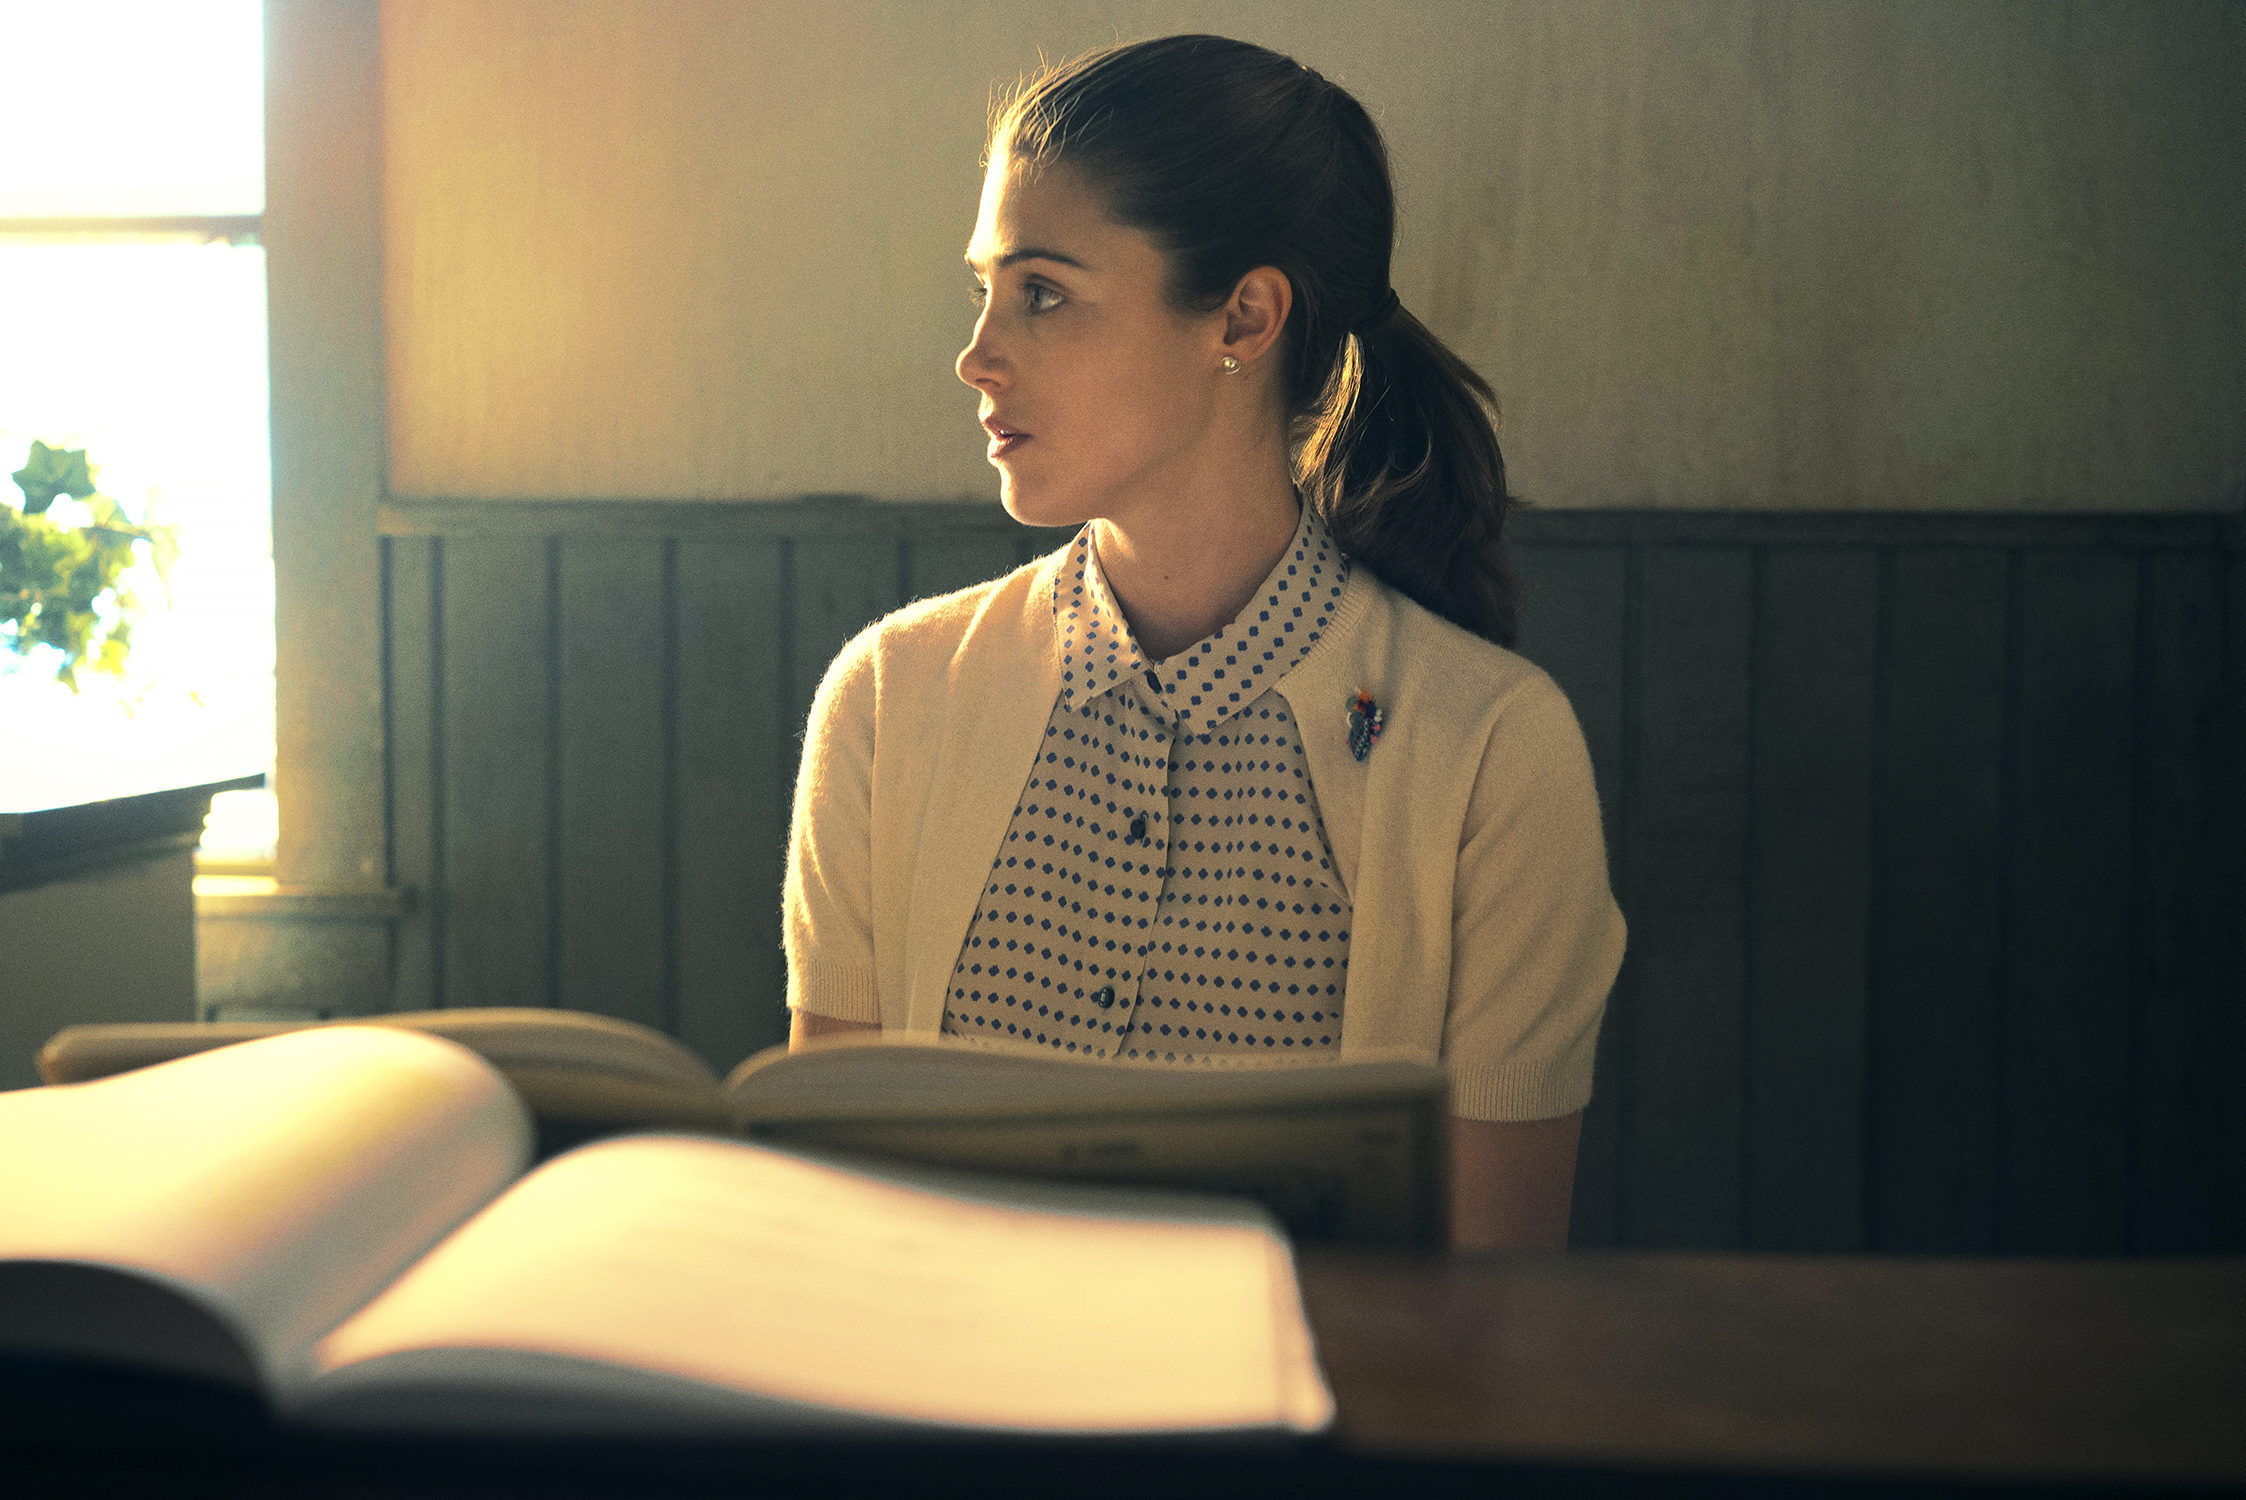 Lucy Griffiths as Emily - Preacher